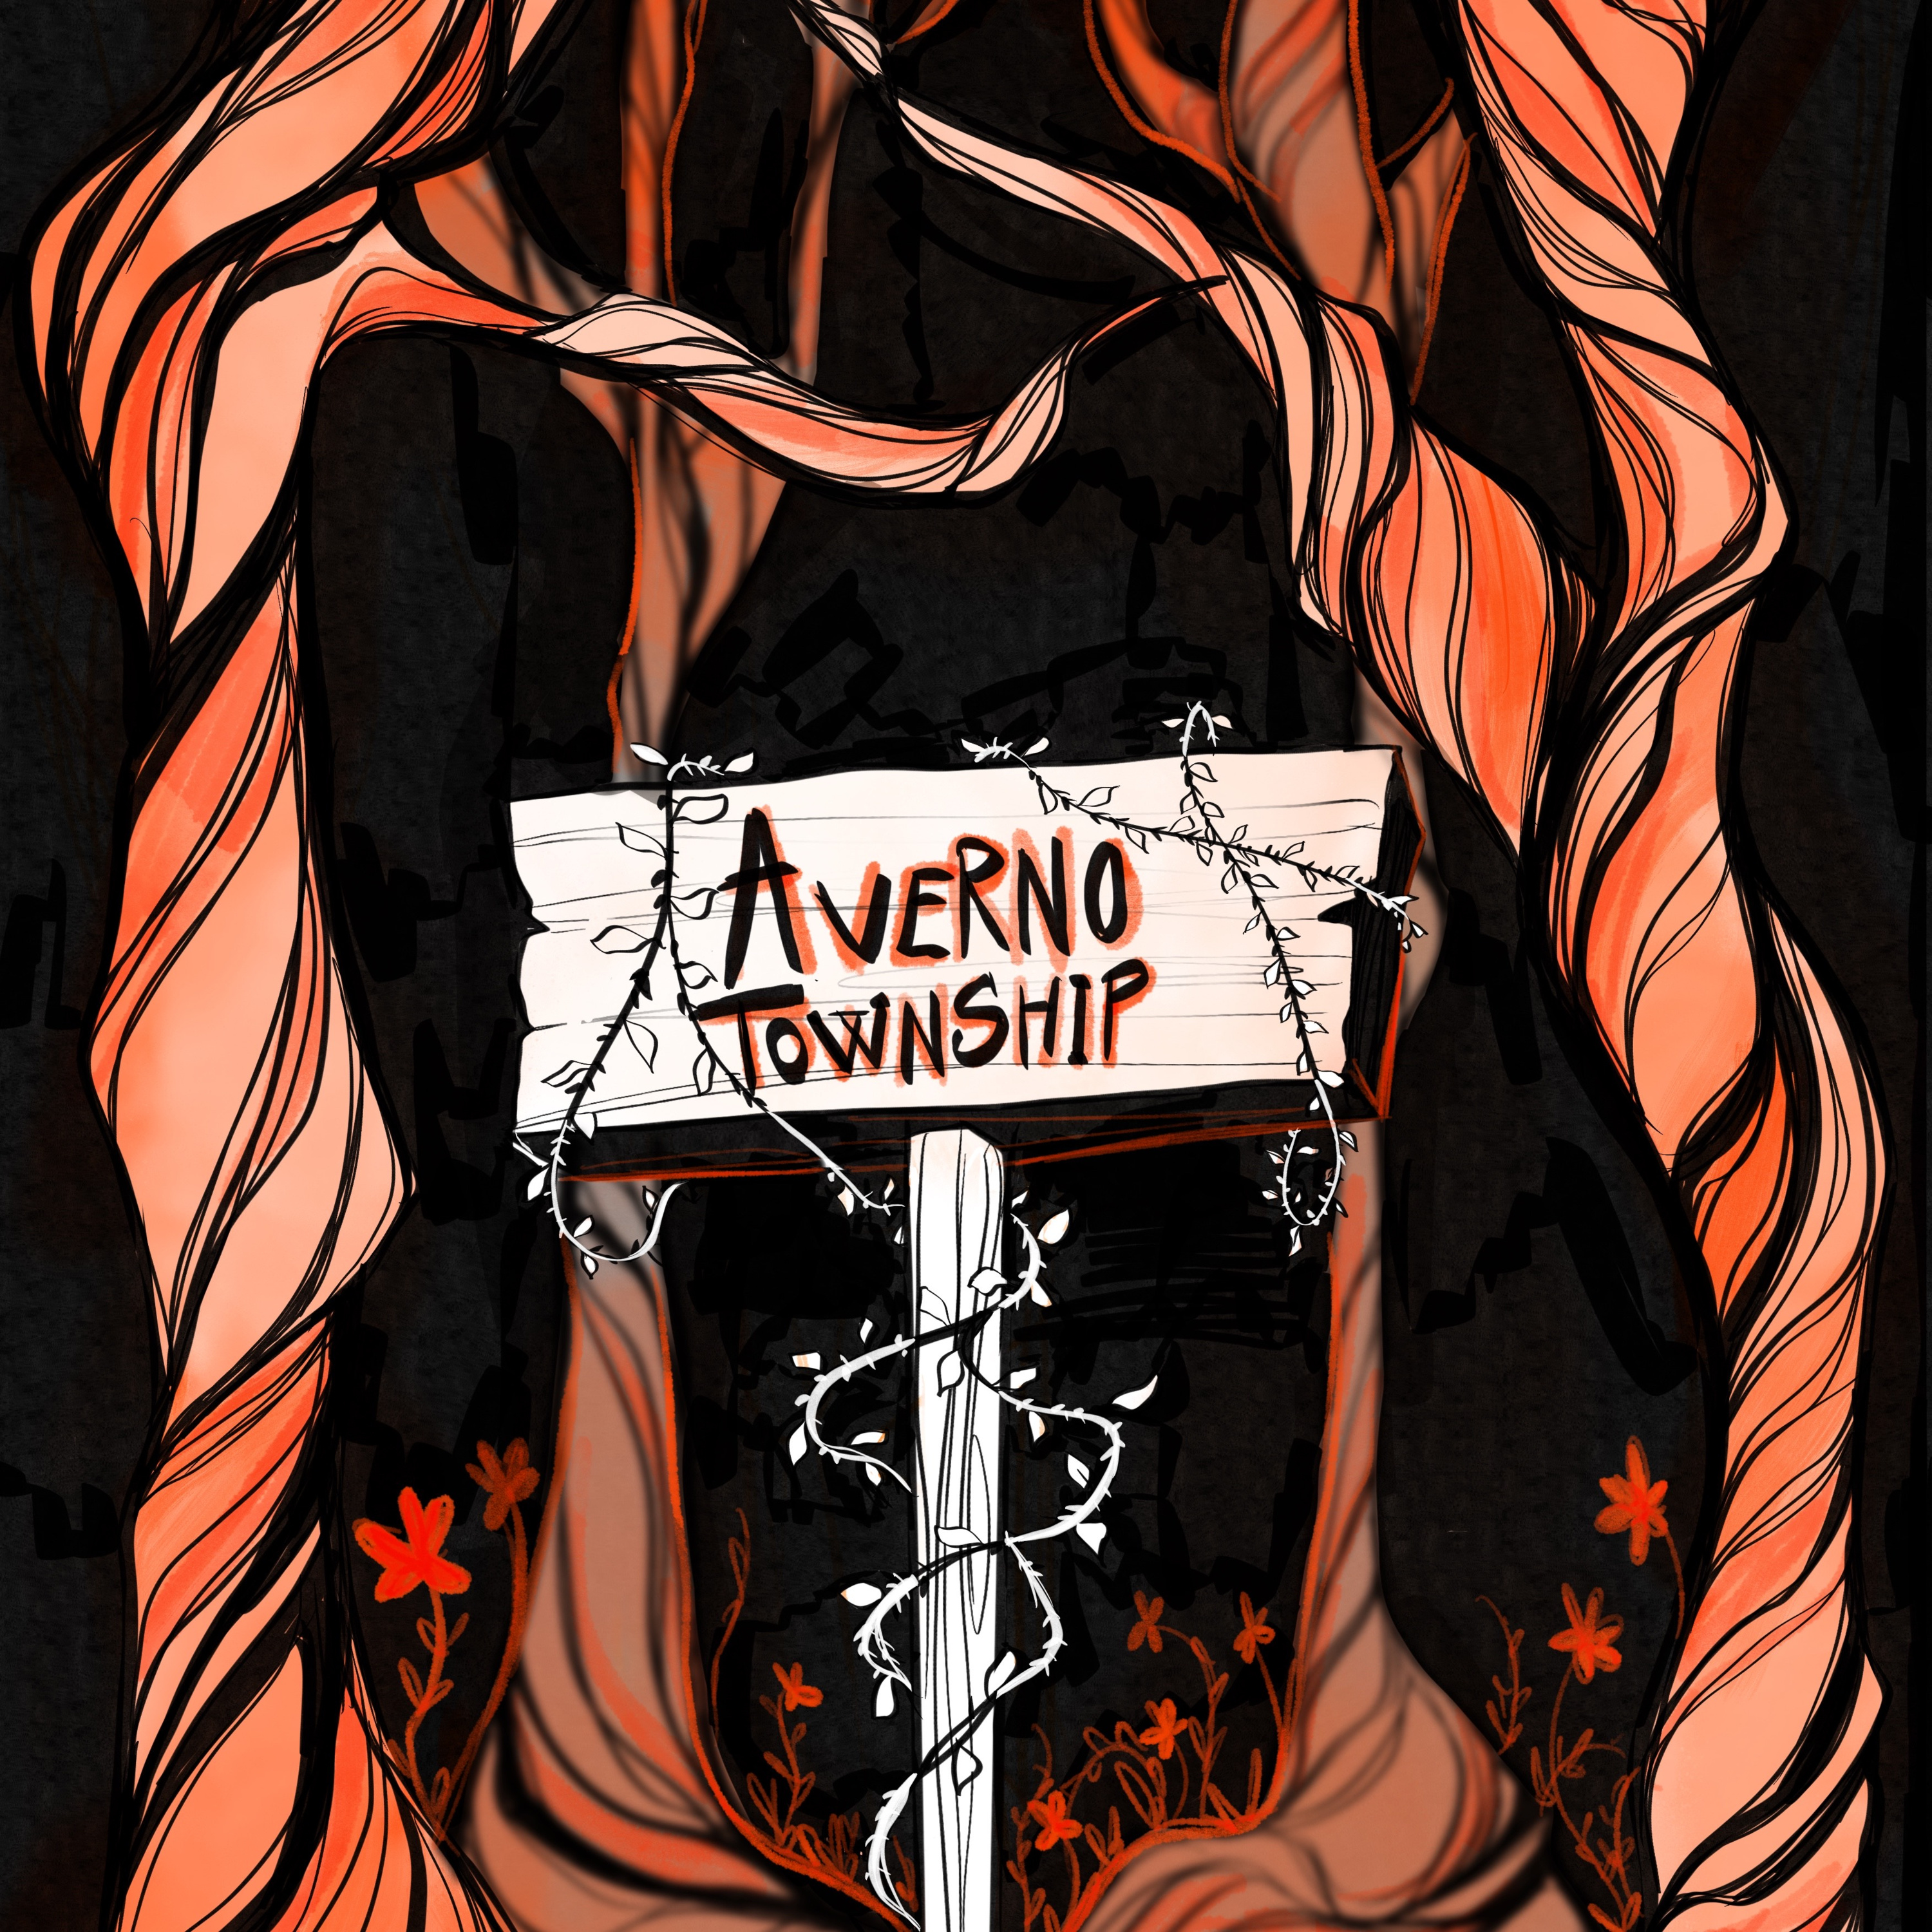 Welcome to Averno